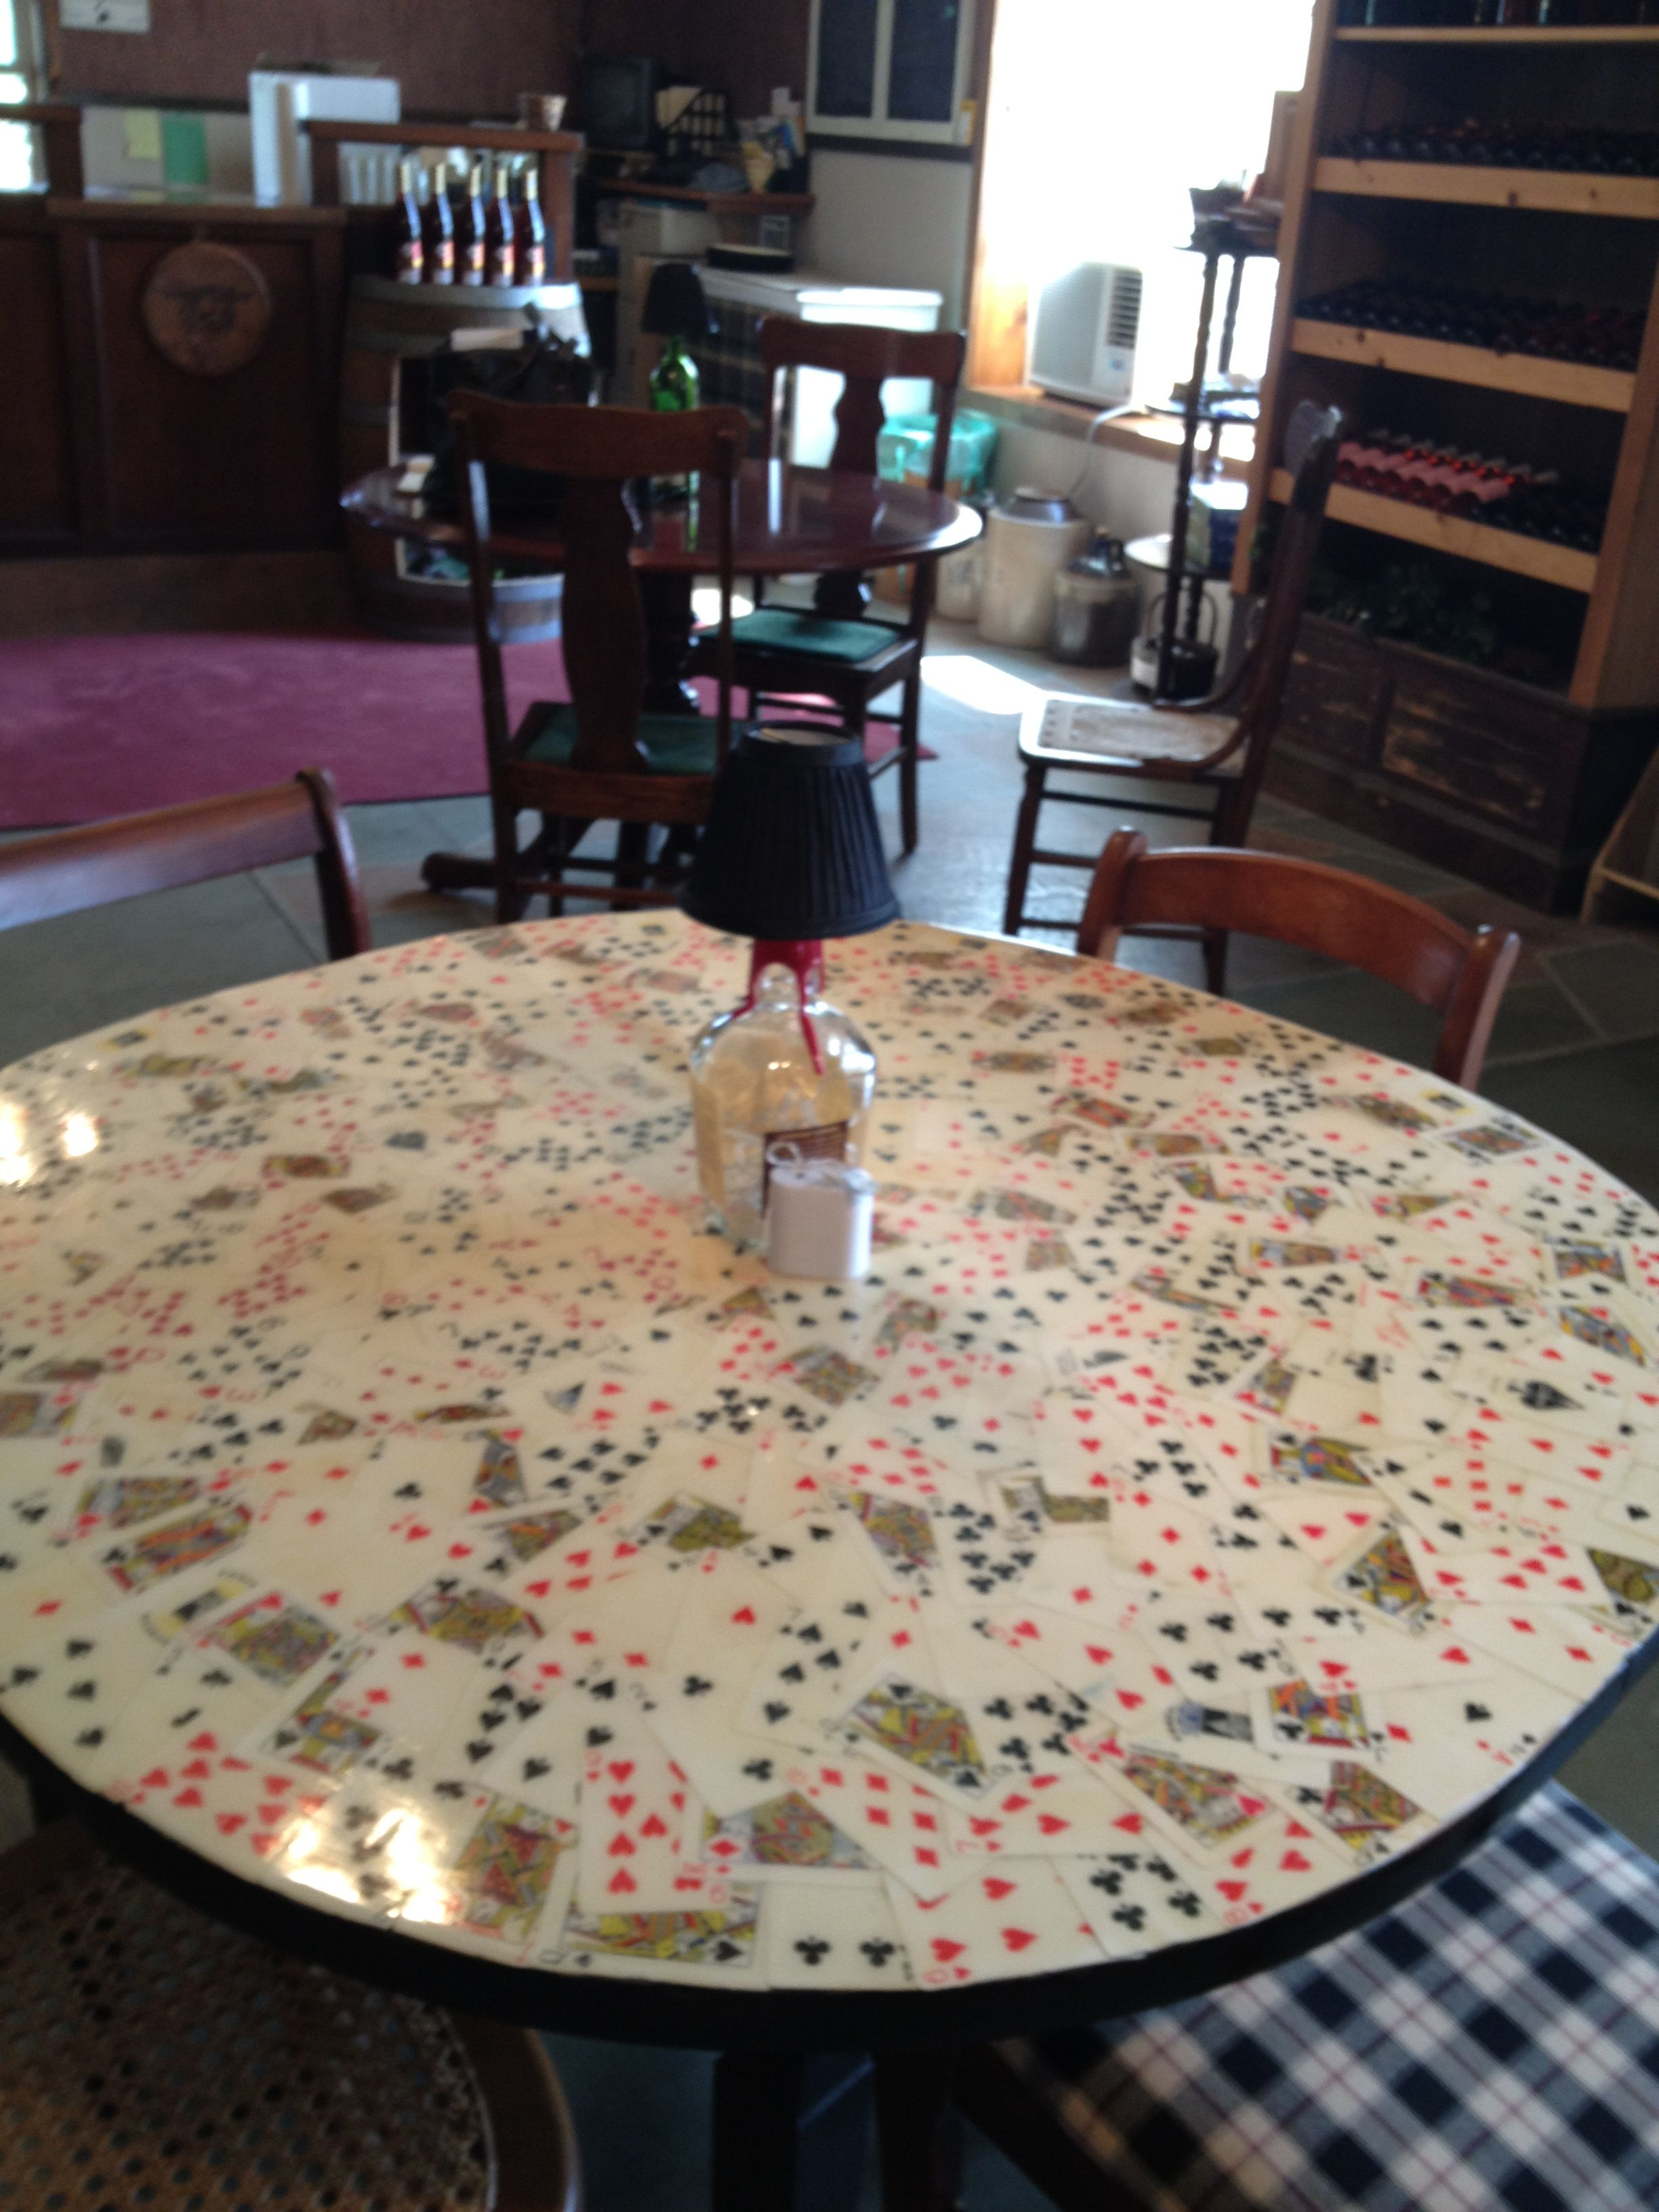 Took Playing Cards Glued Them To A Table And Sealed The Table